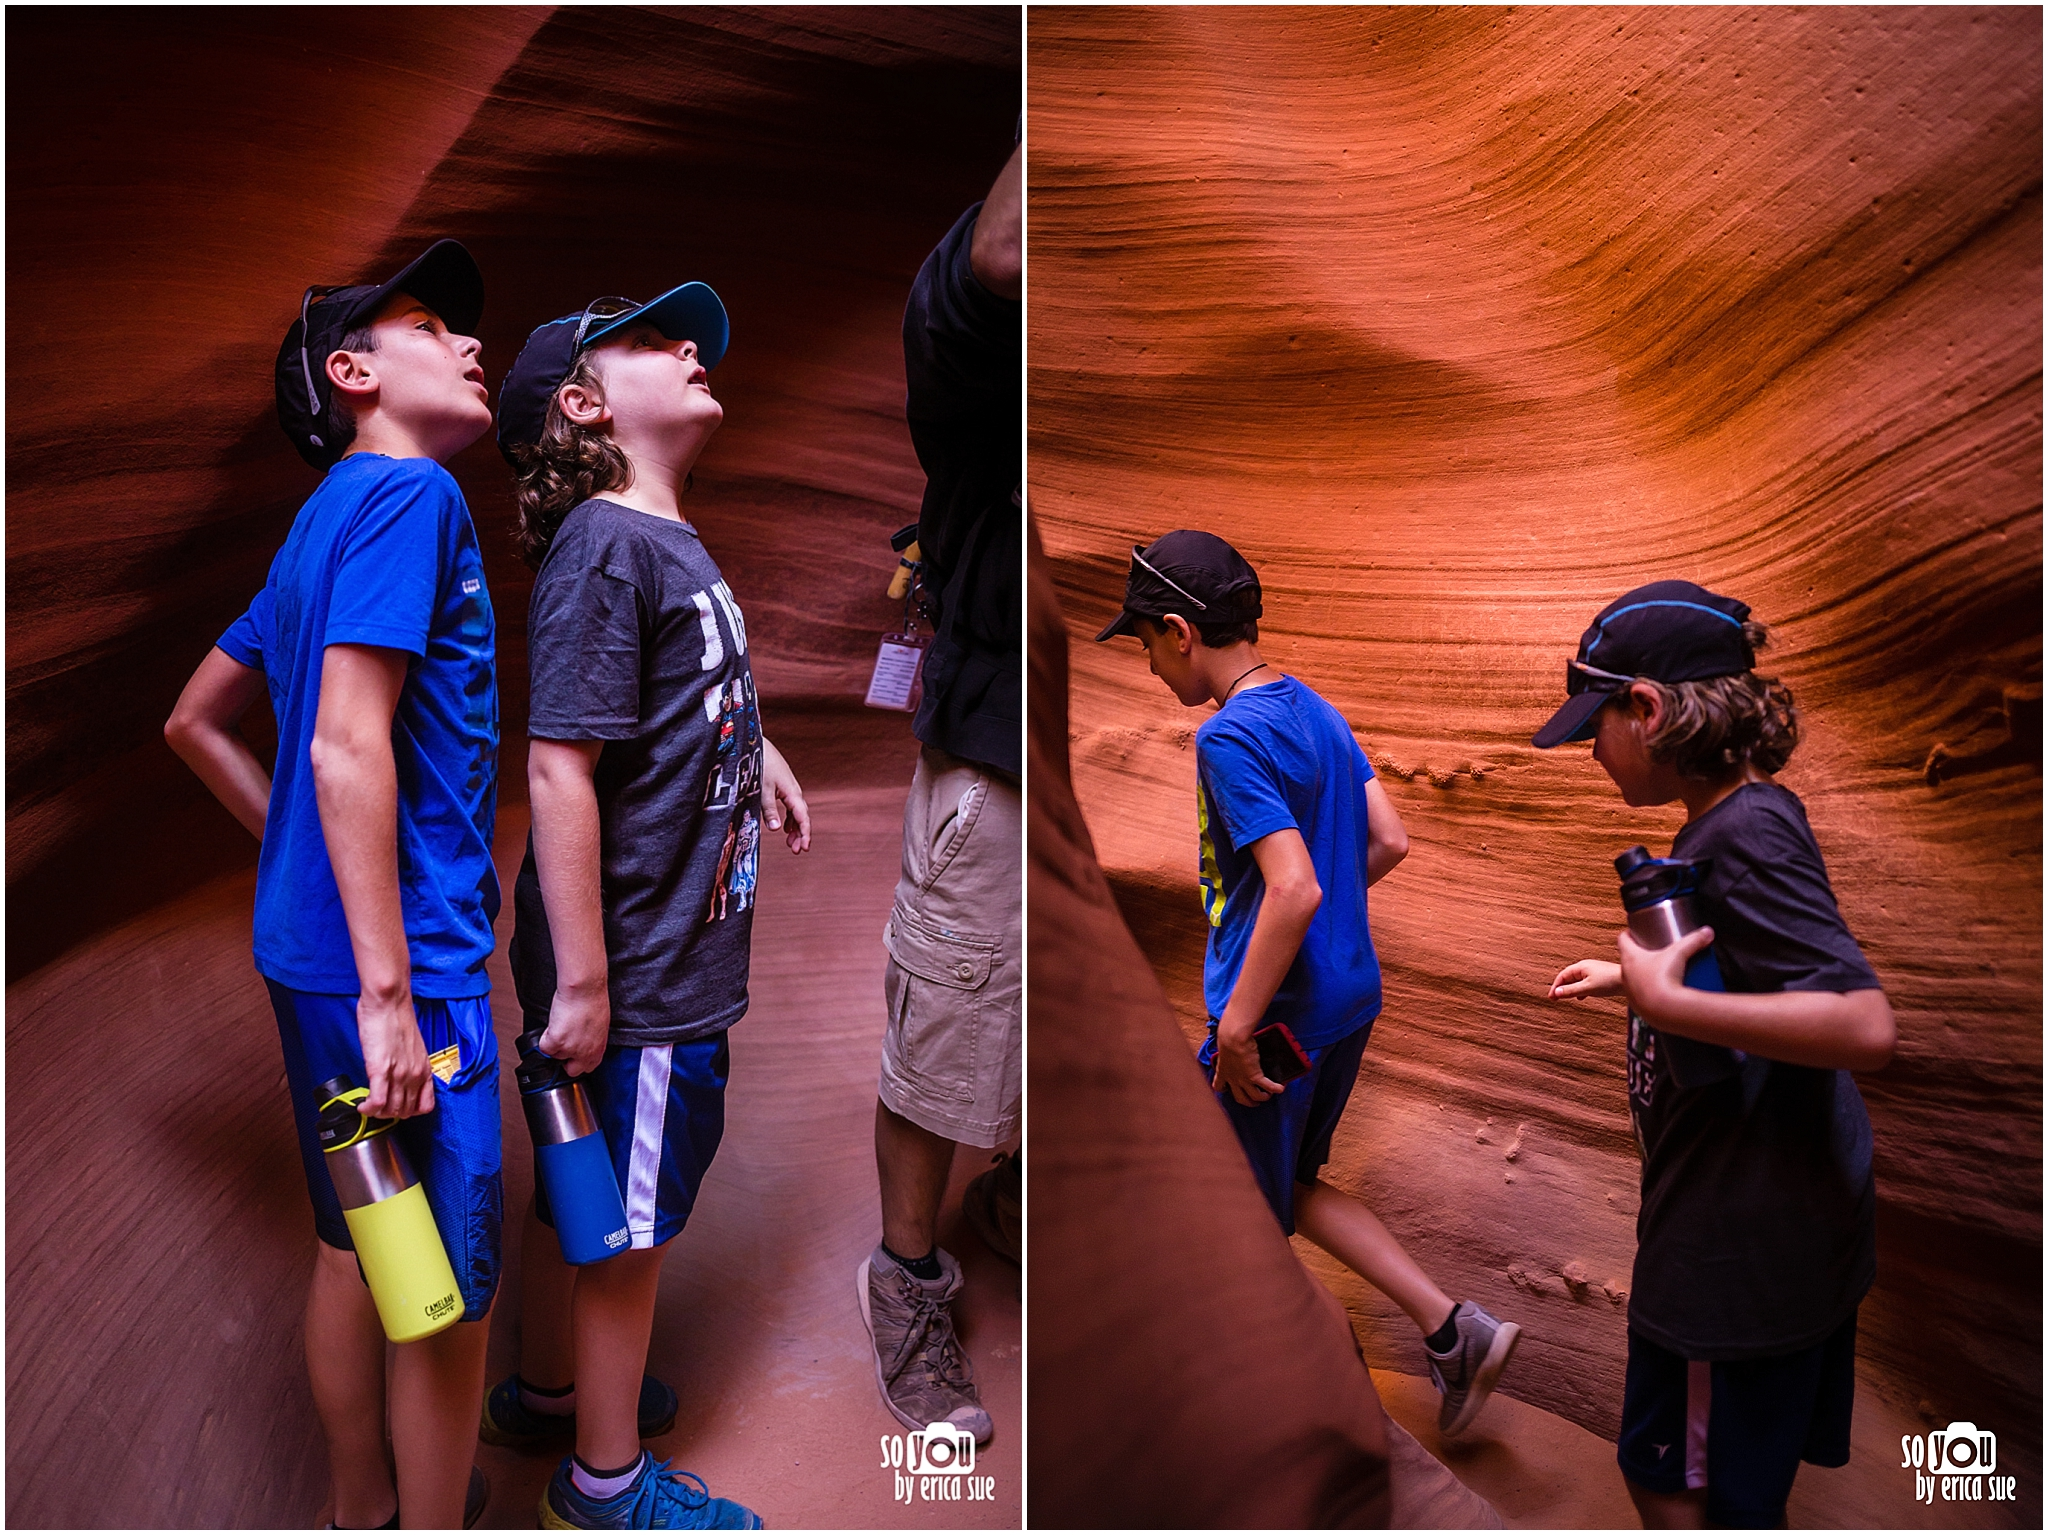 so-you-by-erica-sue-travel-grand-canyon-antelope-canyon-cosanti-arizona-9259 (2).jpg